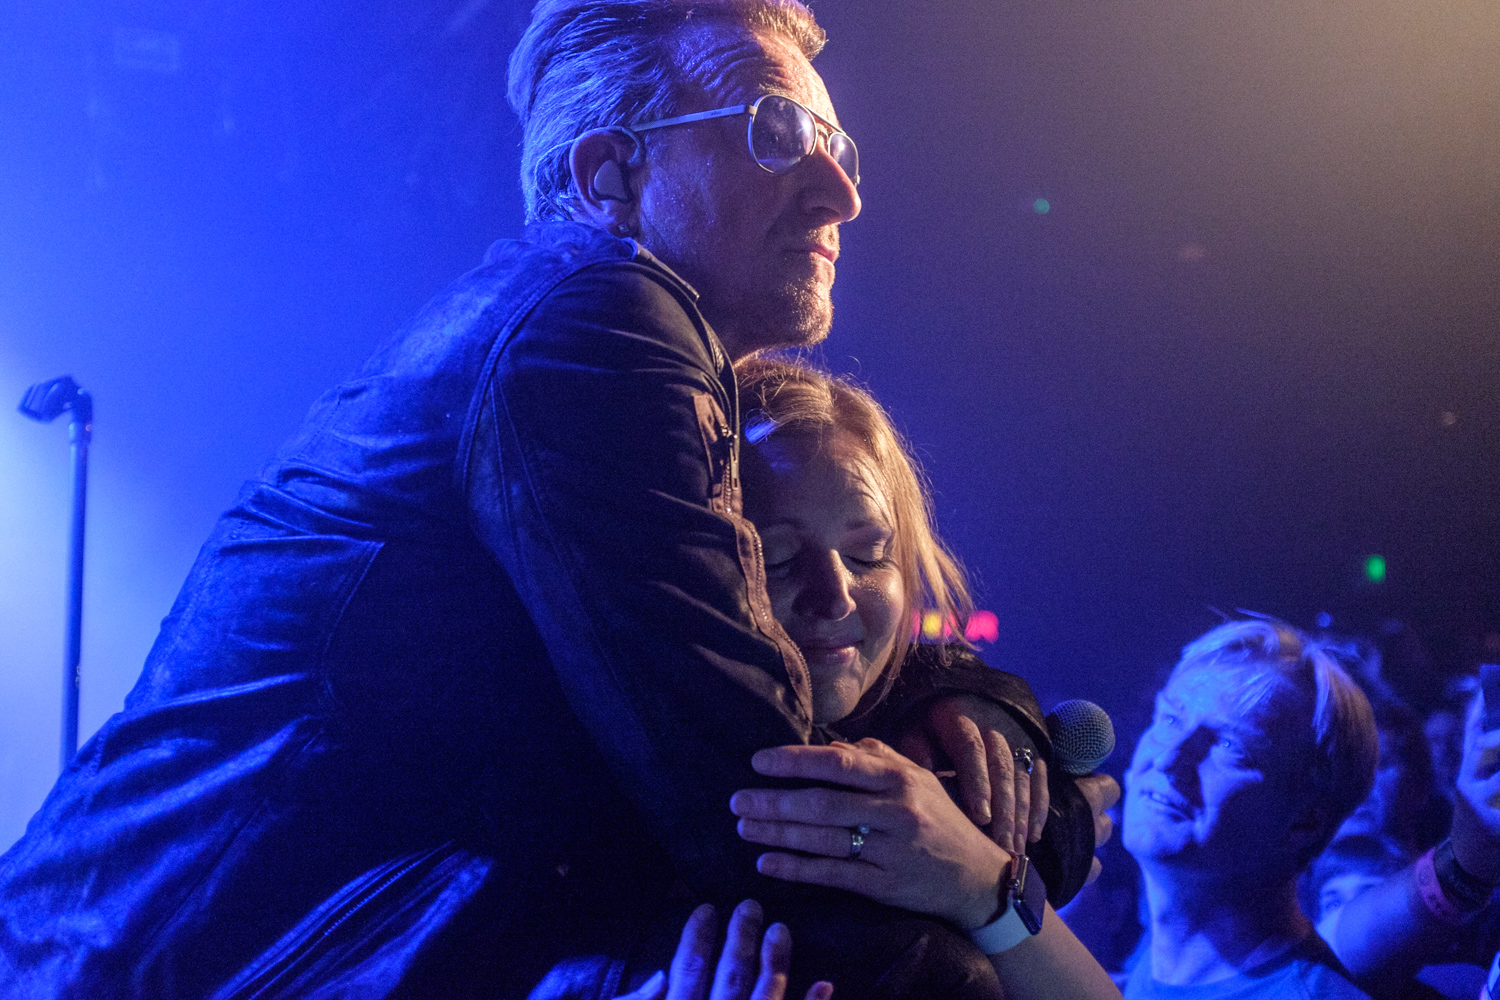 Bono at the Roxy